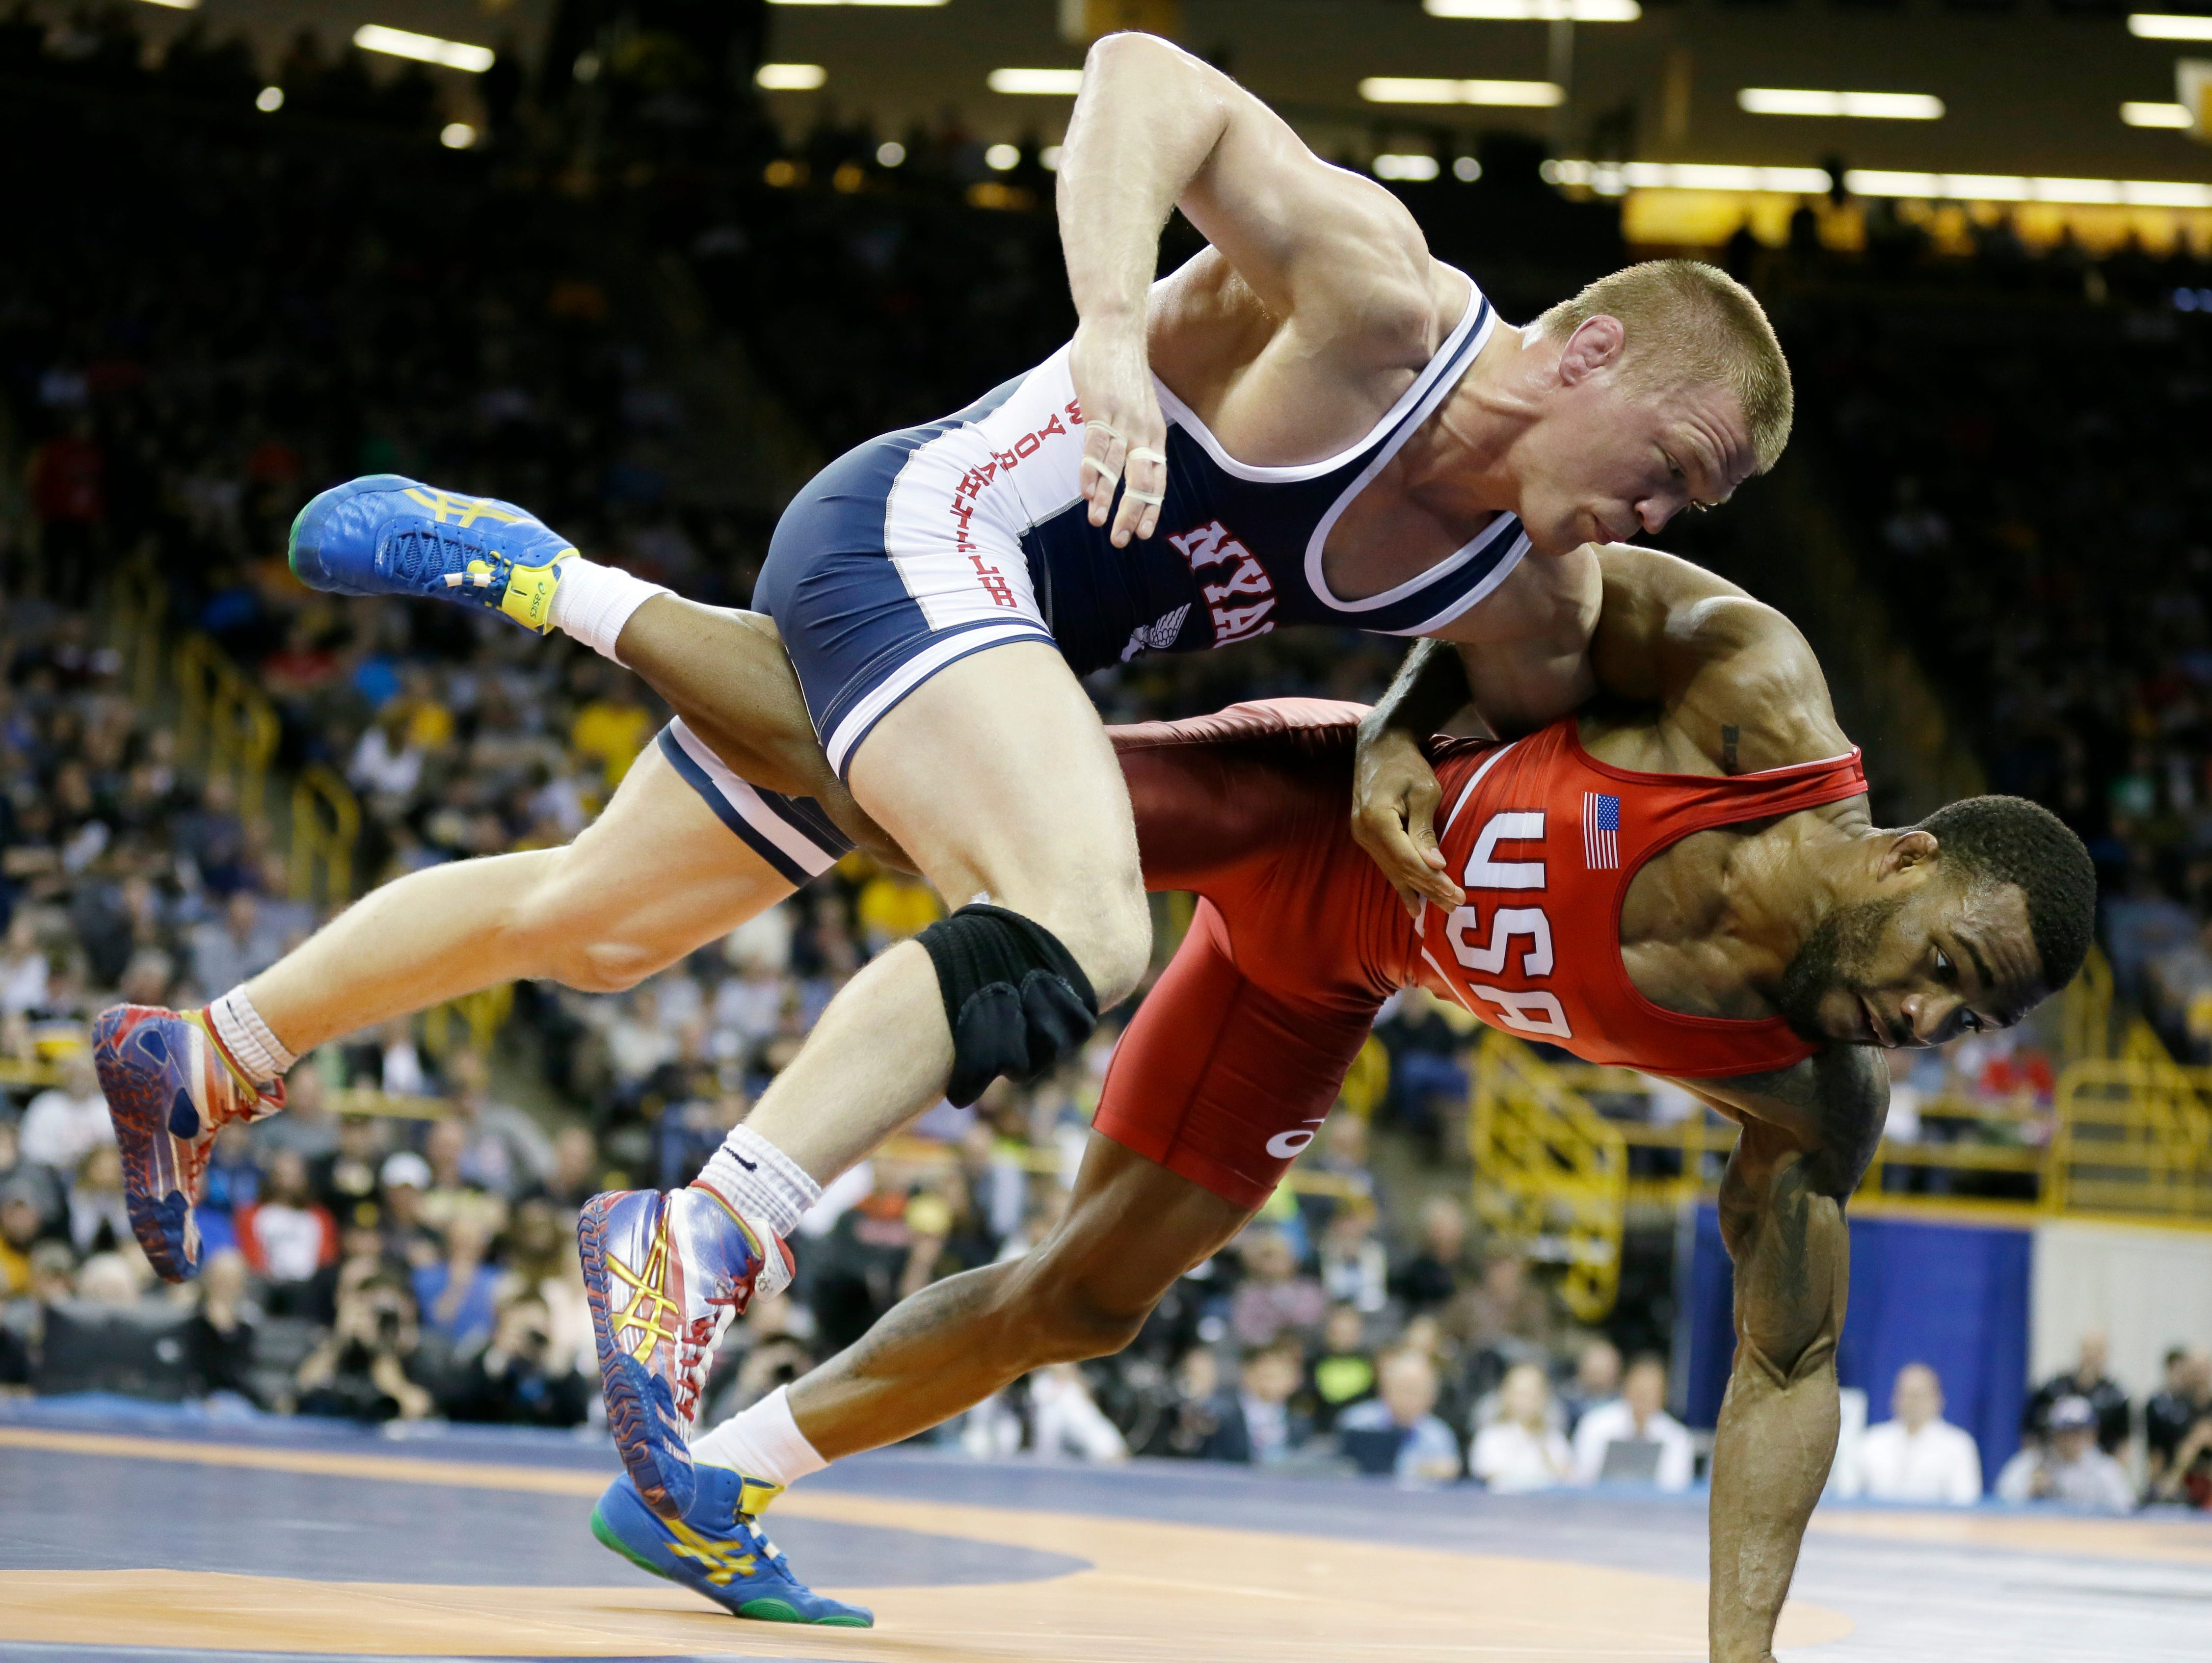 Andrew Howe (left) tries to take Jordan Burroughs to the mat during their 163-pound freestyle match at the U.S. Olympic wrestling team trials April 10, 2016, in Iowa City, Iowa.